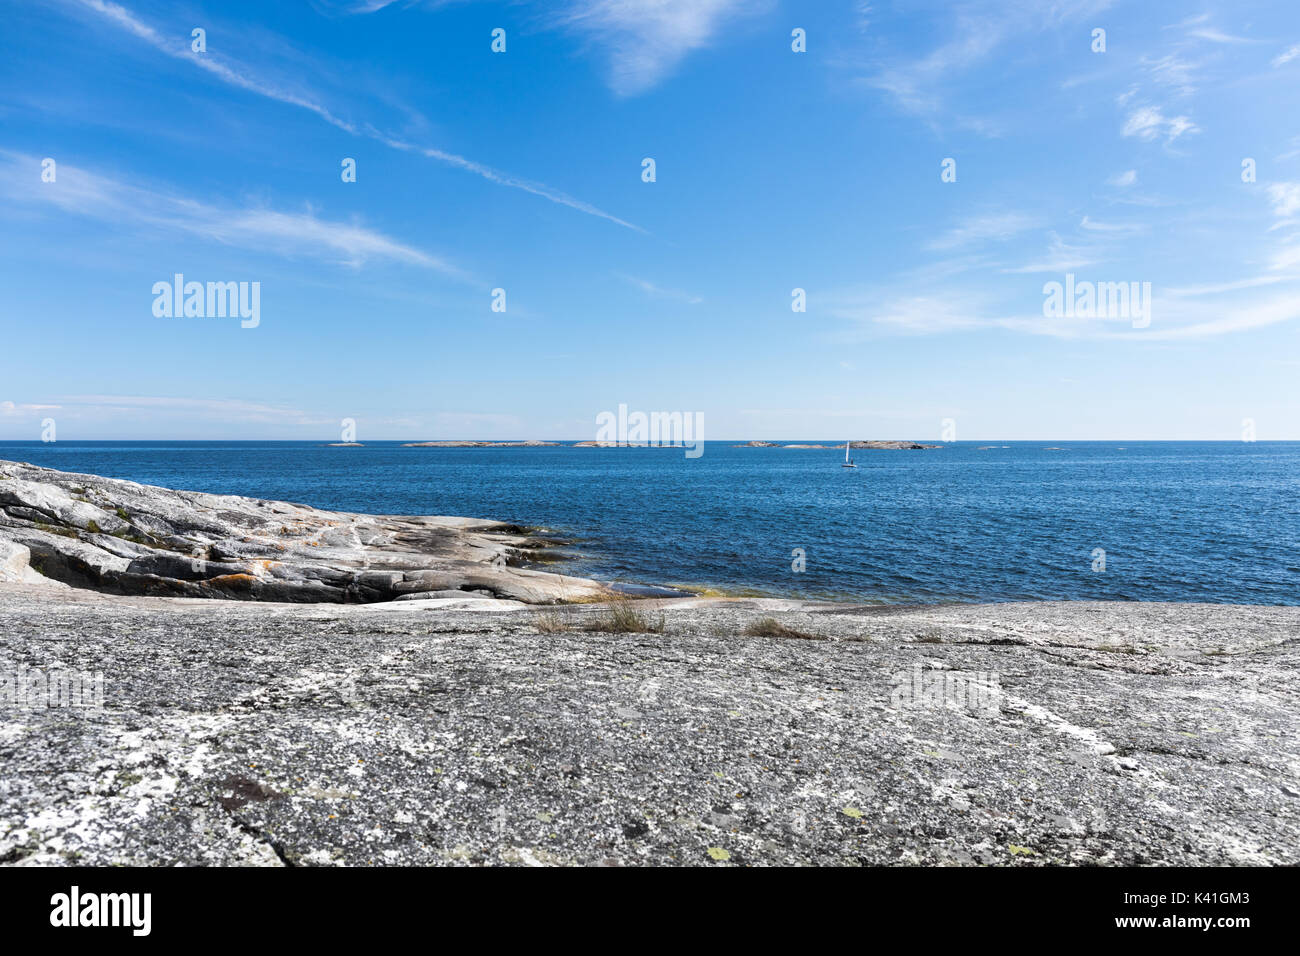 A small dinghy sails along the coastline of an island int eh otuer reaches of teh Stockholm archipelago on a bright sumnmer's day - Stock Image